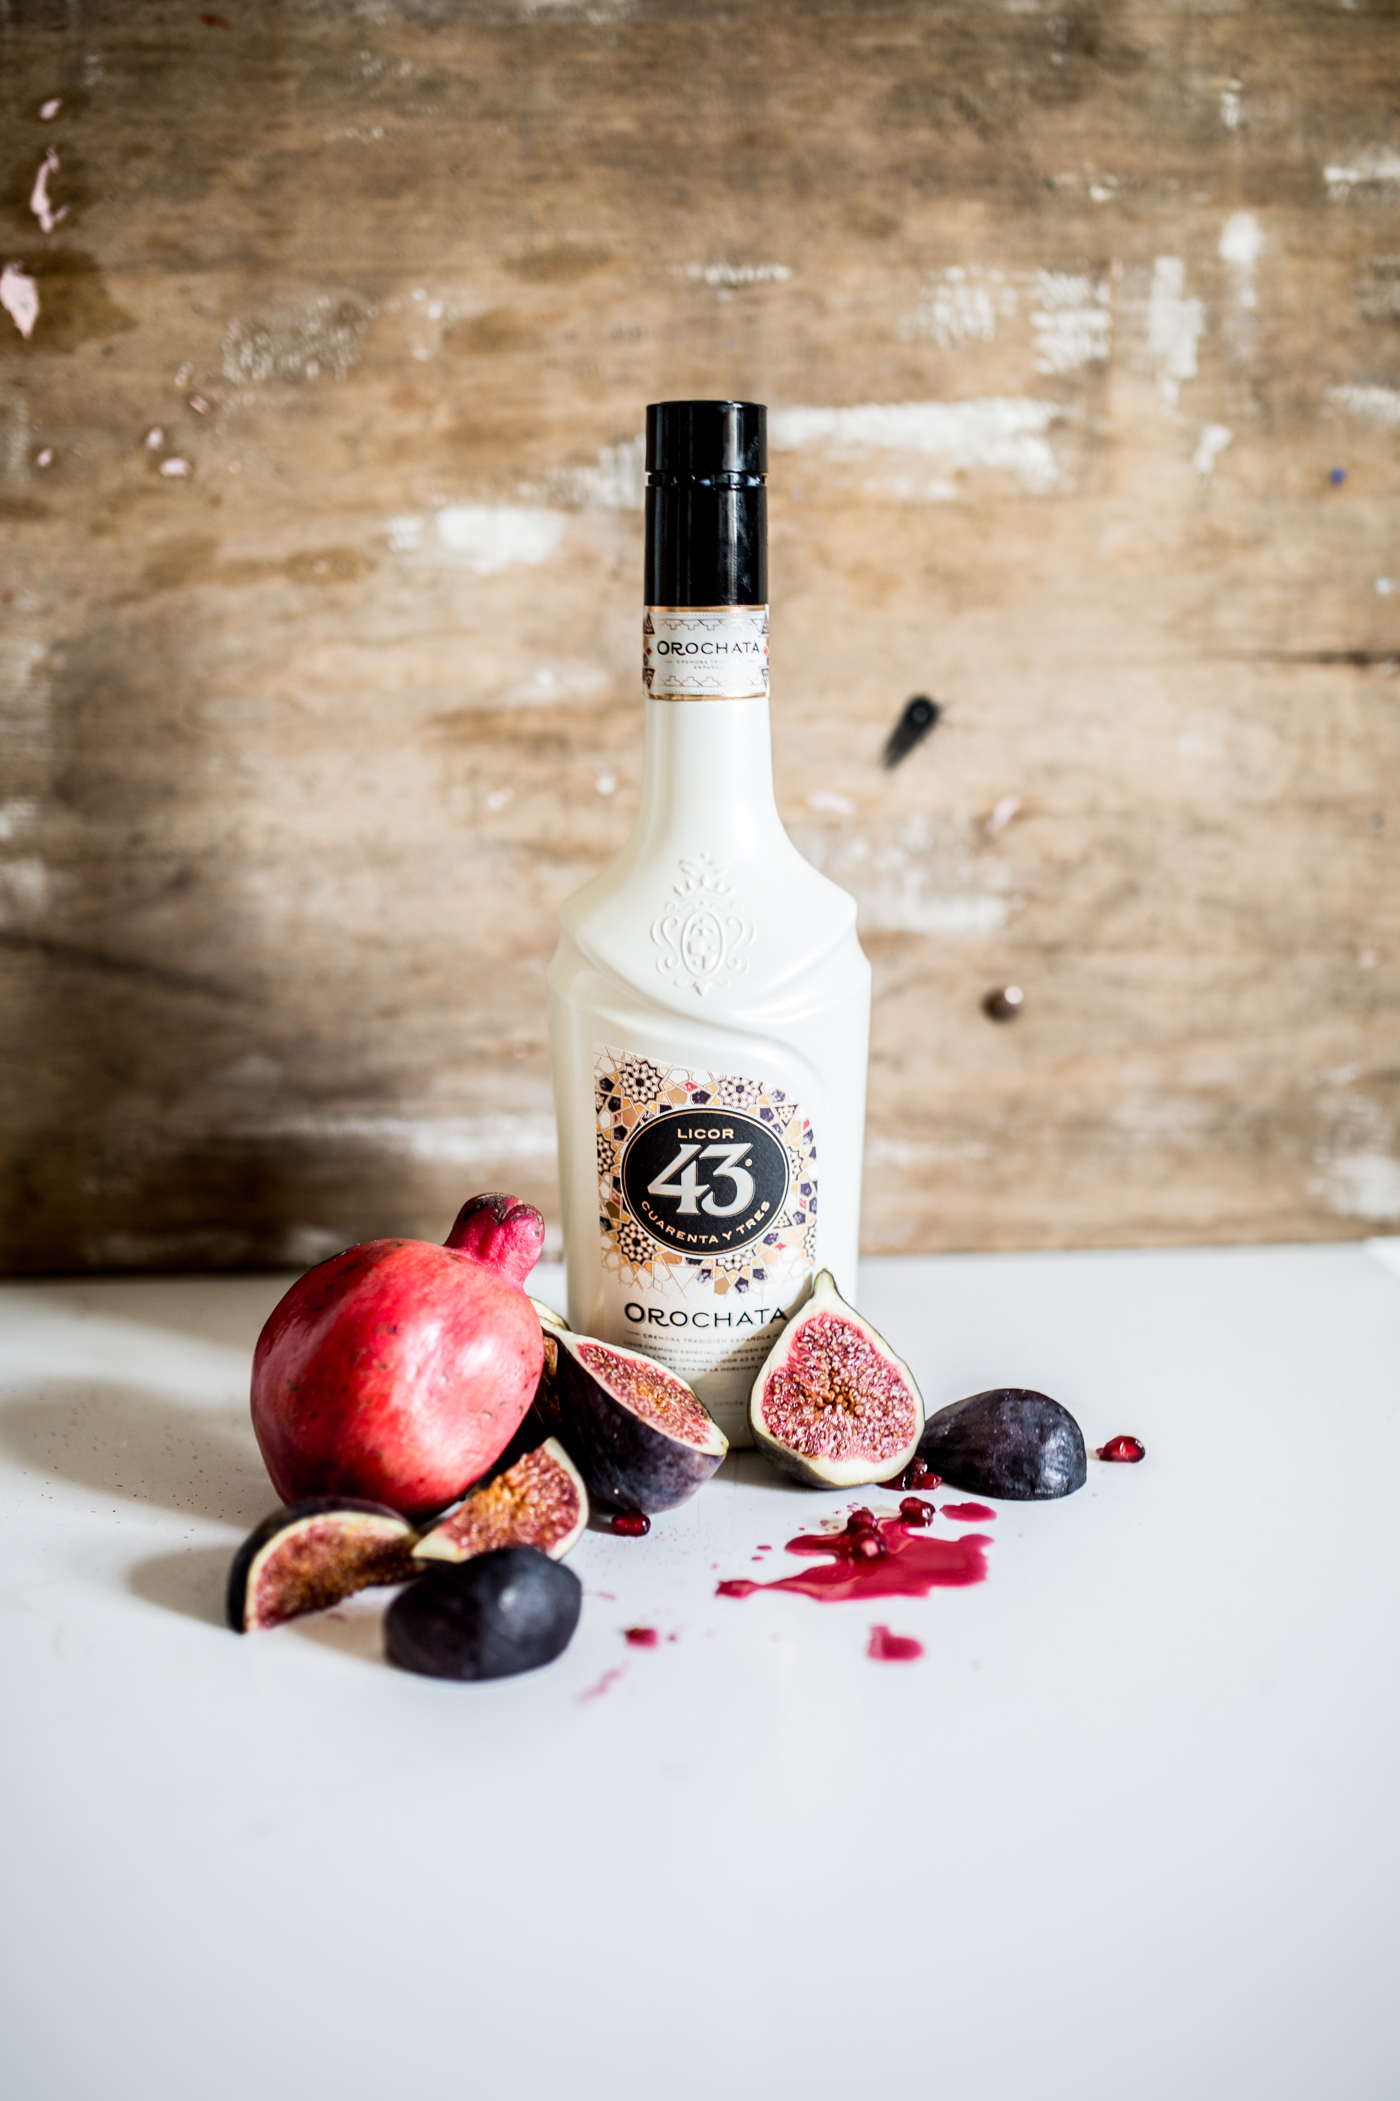 Licor 43 Orchata- a summer Drink